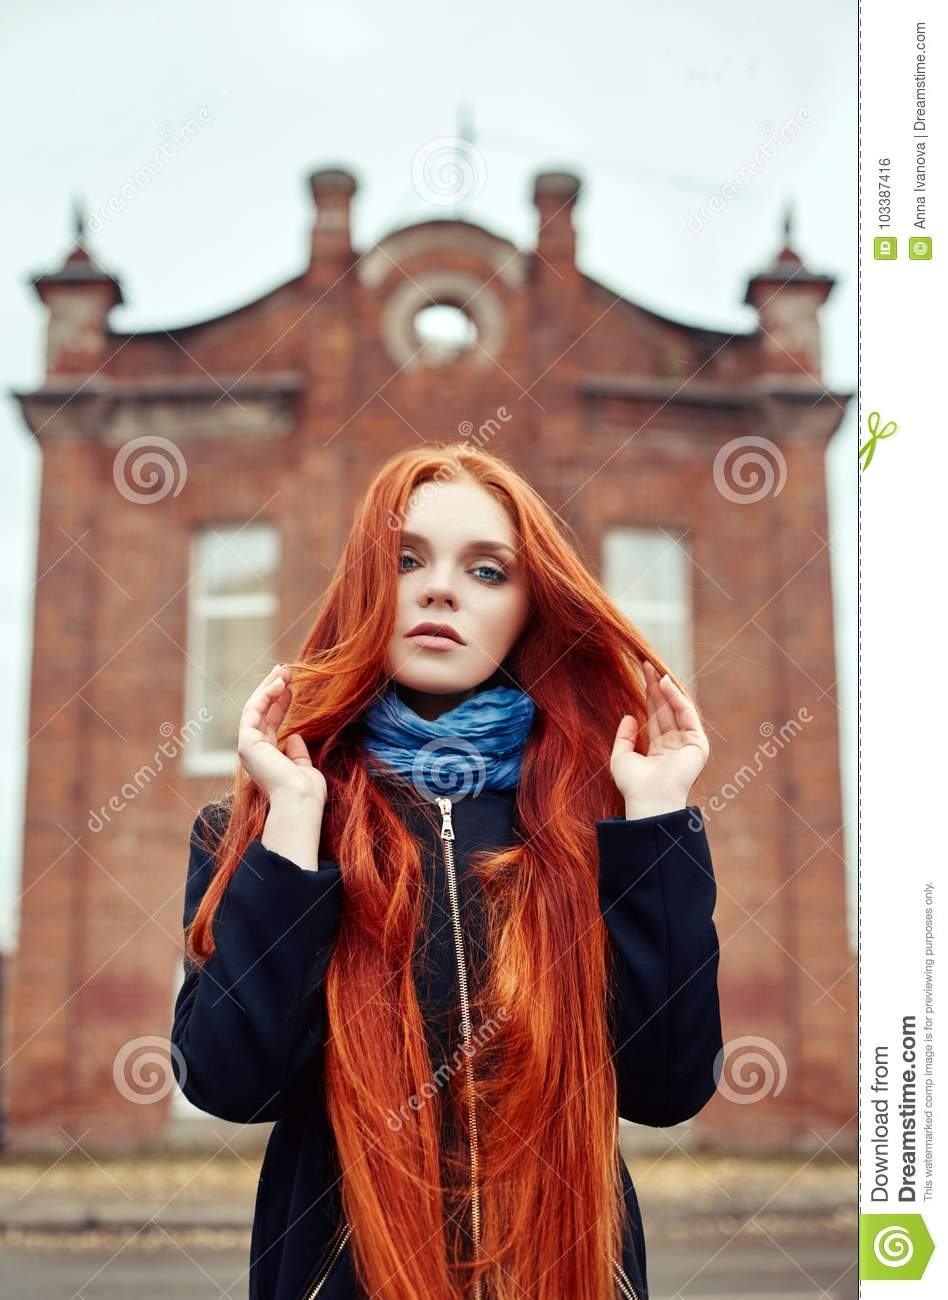 3c080850e4b Woman with long red hair walks in autumn on the street. Mysterious dreamy  look and the image of the girl. Redhead woman walking in the autumn the  city.